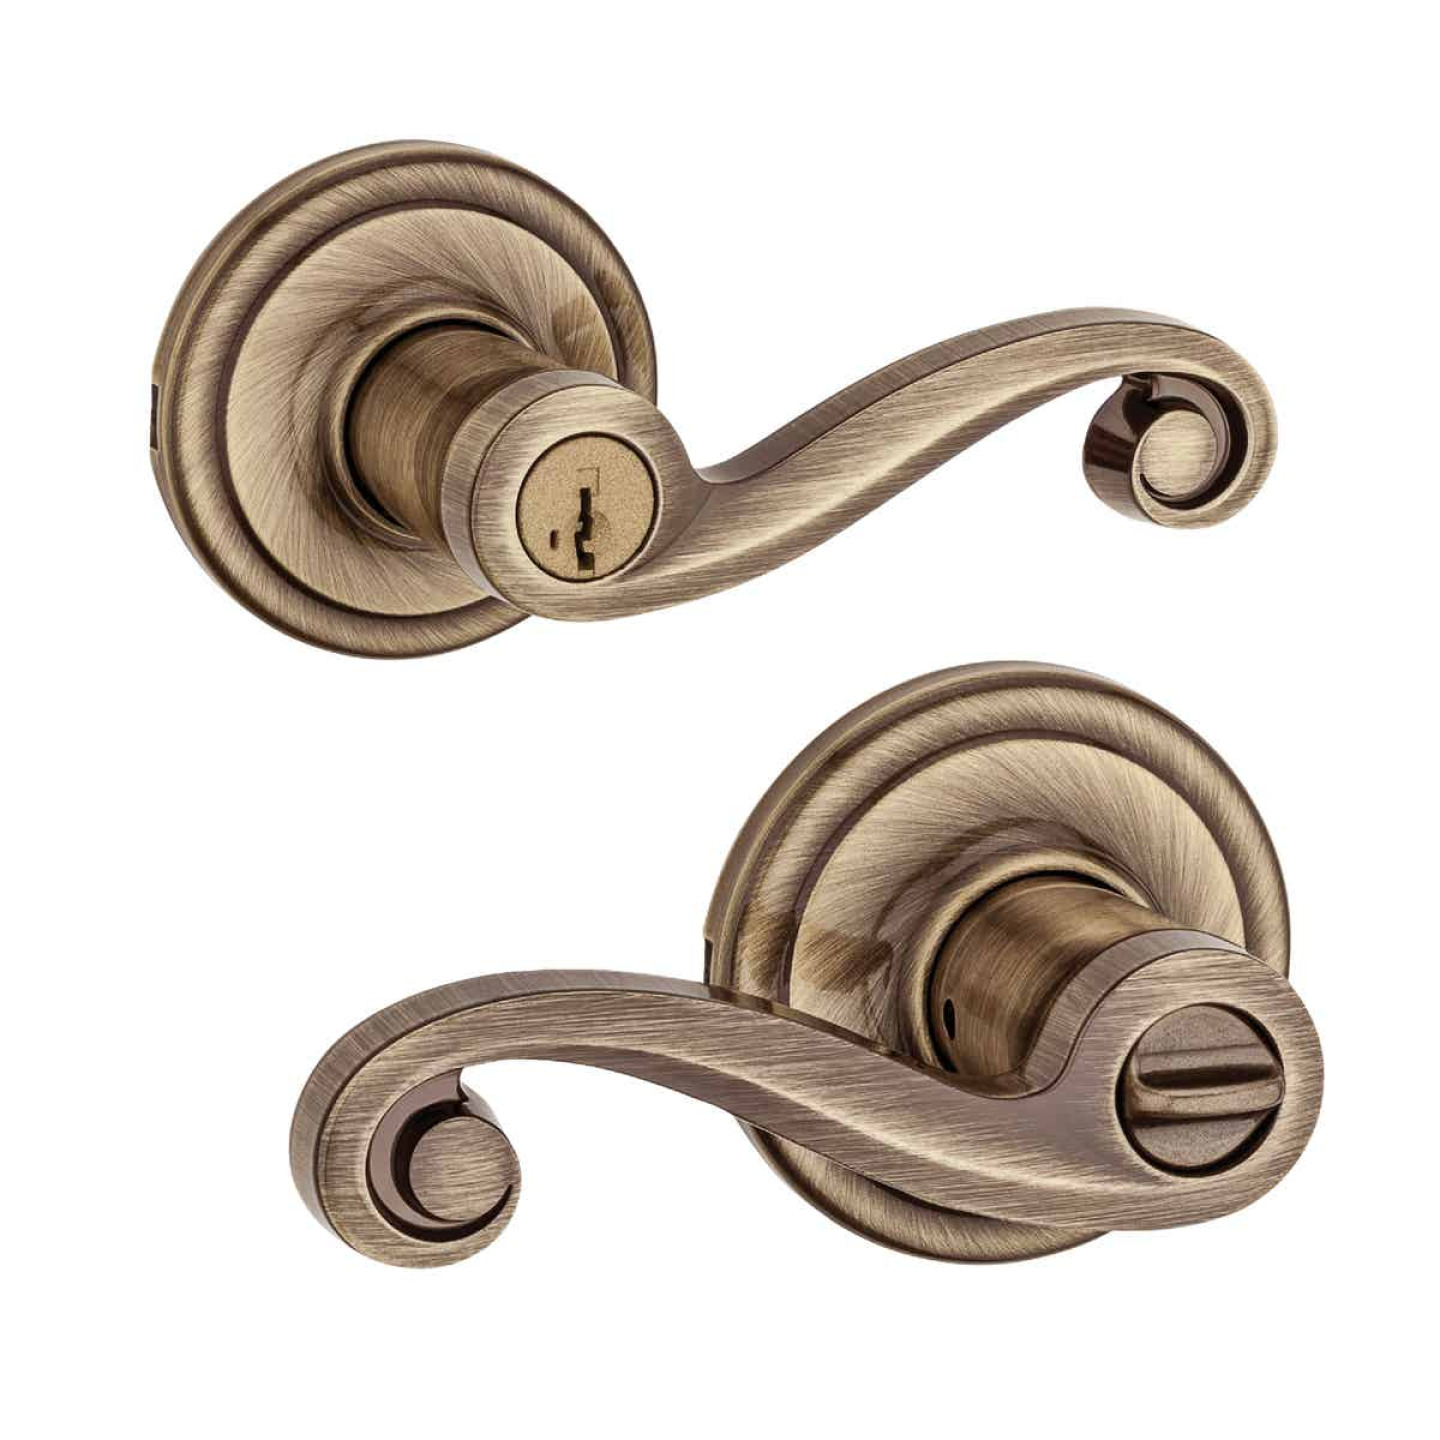 Kwikset Signature Series Antique Brass Lido Entry Door Lever with Smartkey Image 3